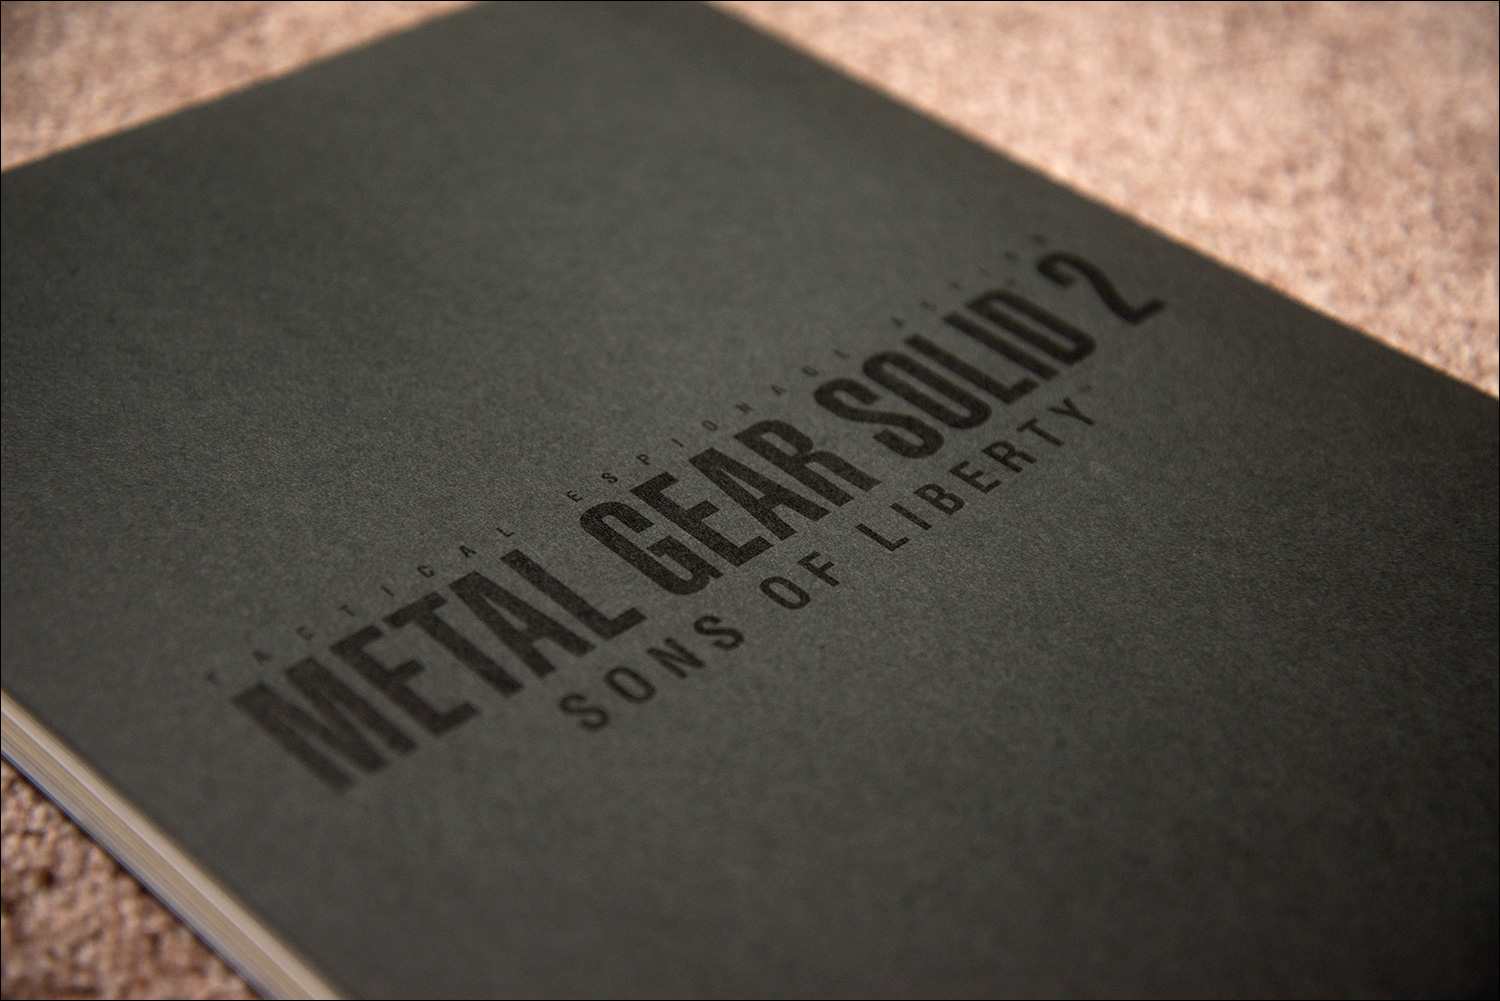 The-Art-of-Metal-Gear-Solid-2-Title